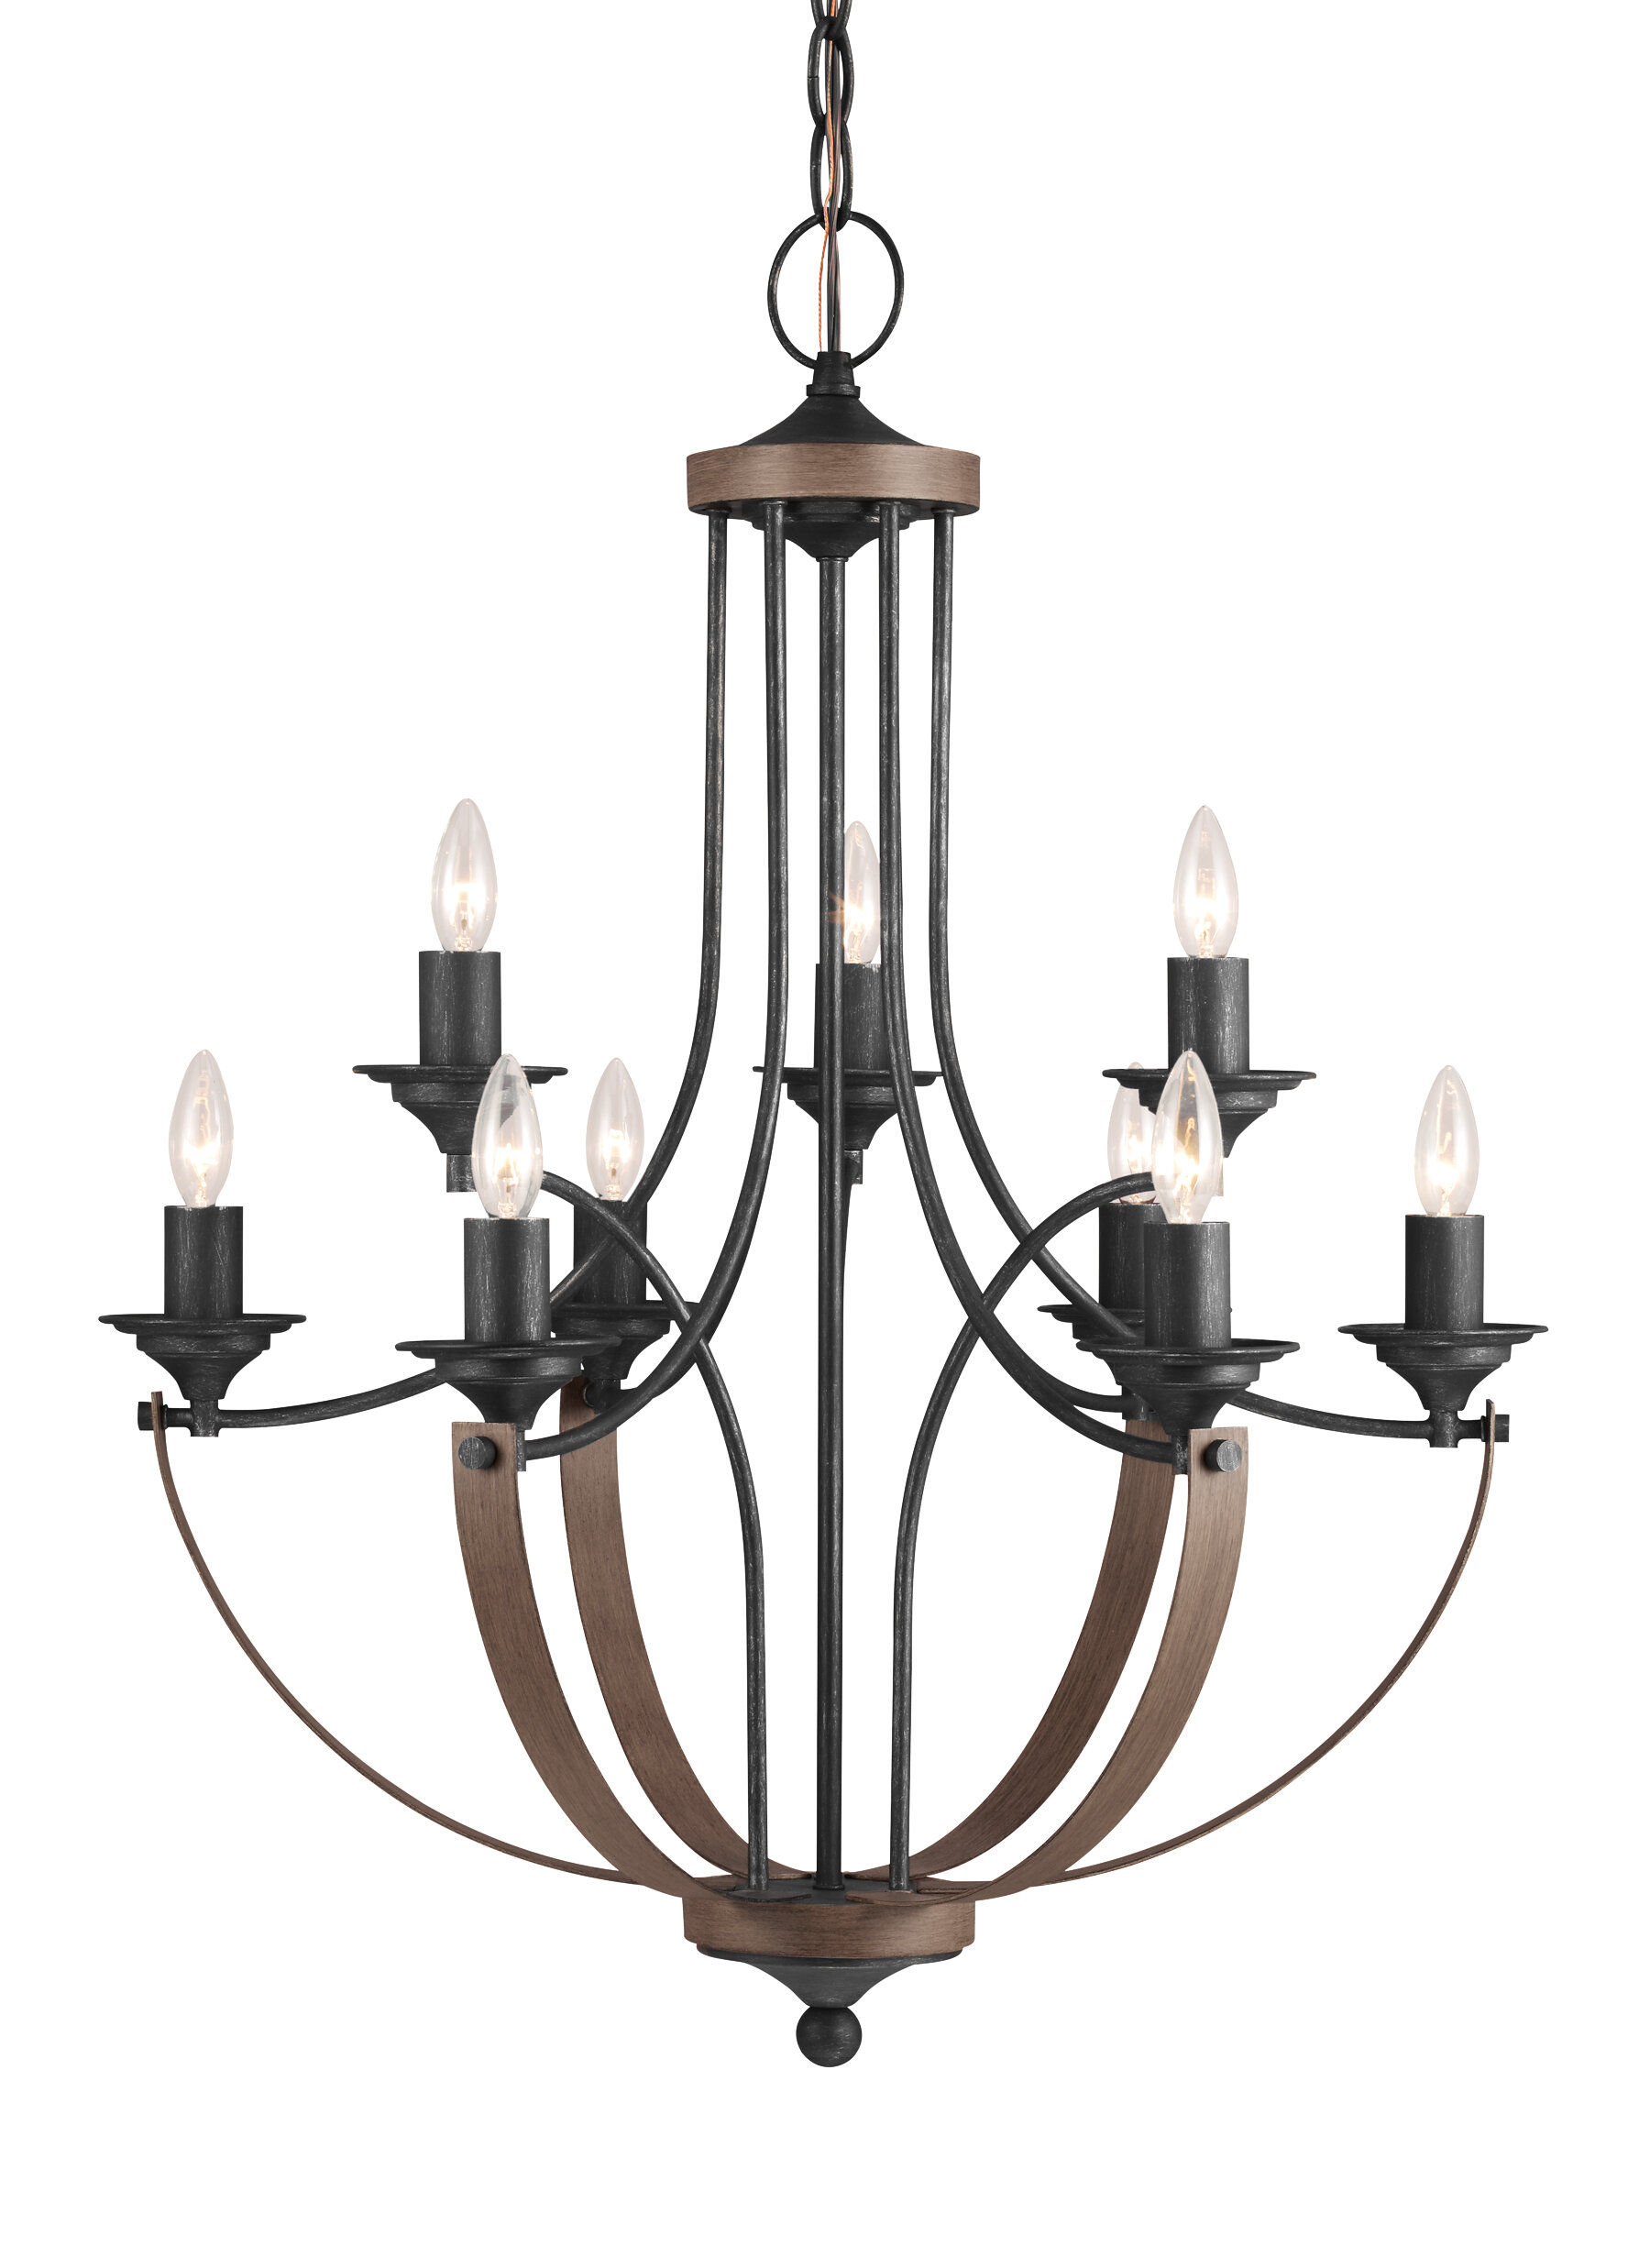 tuscan fixtures custom decor glass lighting s kate gs macleod in bowl fused art to residence villa match scavo chandelier style